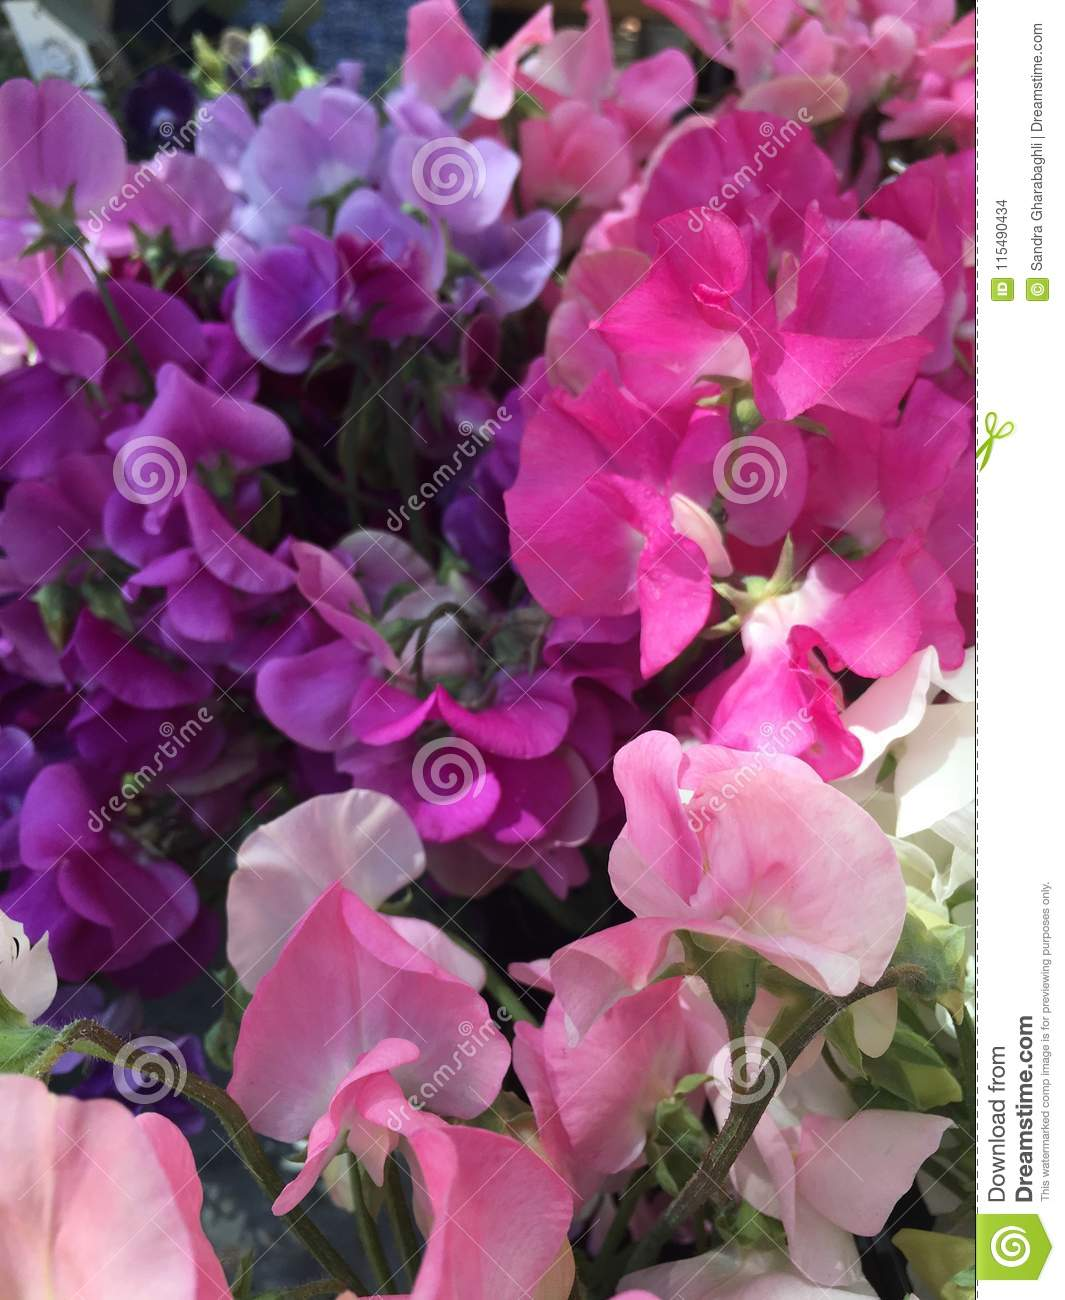 Purple Hot Pink And Pale Pink Sweet Peas Stock Photo Image Of